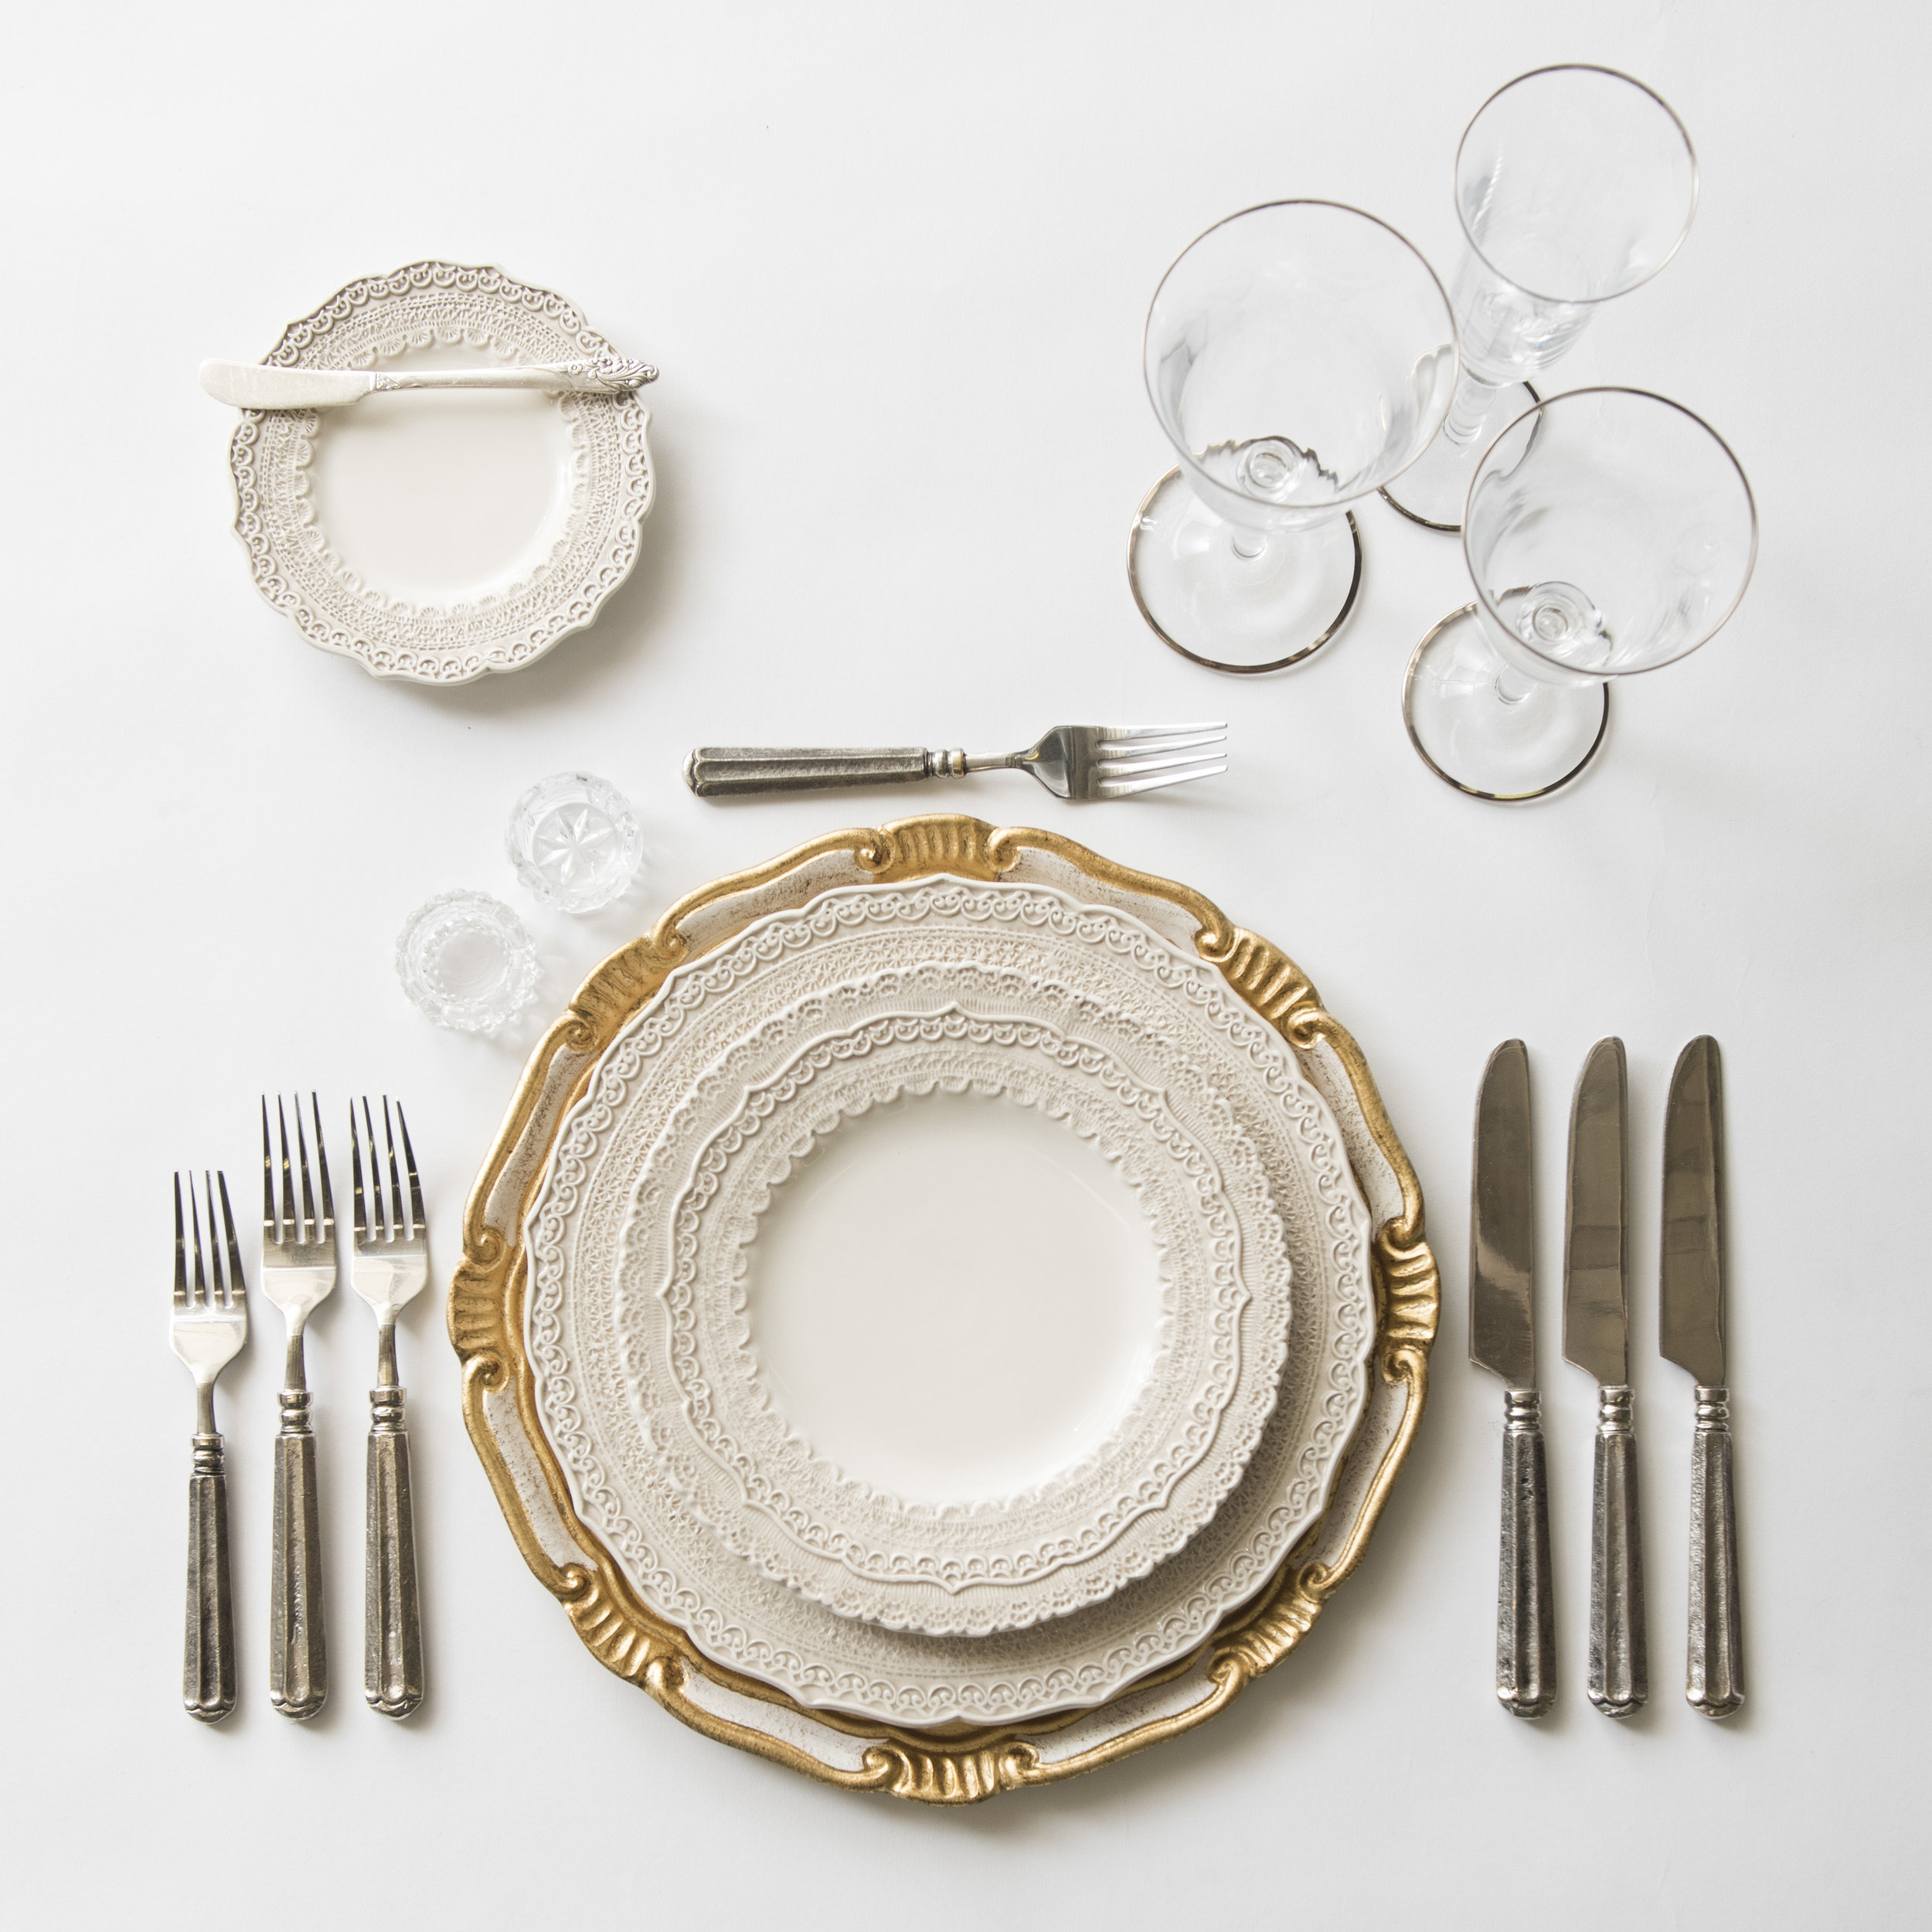 RENT: Florentine Chargers in White/Gold + Lace Dinnerware in White + Tuscan Flatware in Pewter + Chloe Platinum Rimmed Stemware + Antique Crystal Salt Cellars  SHOP:Florentine Chargers in White/Gold